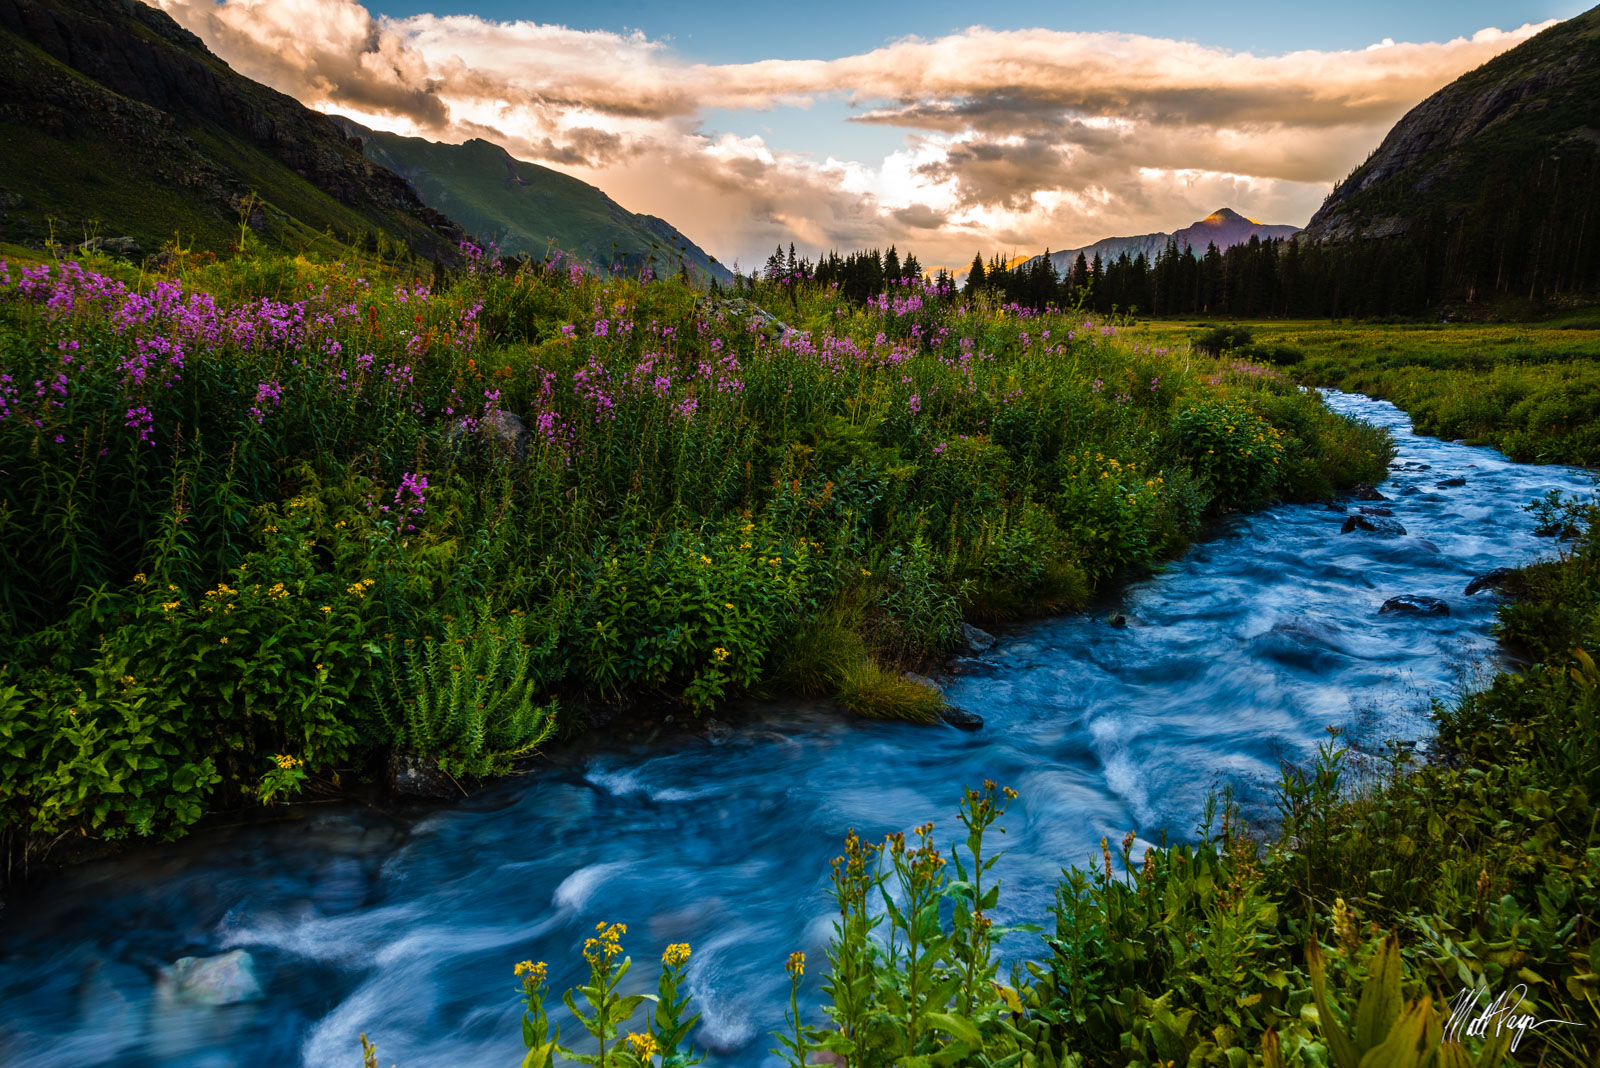 Clouds, Colorado, Ice Lake Basin, Mountains, Stream, Sunset, Water, Wildflowers, photo